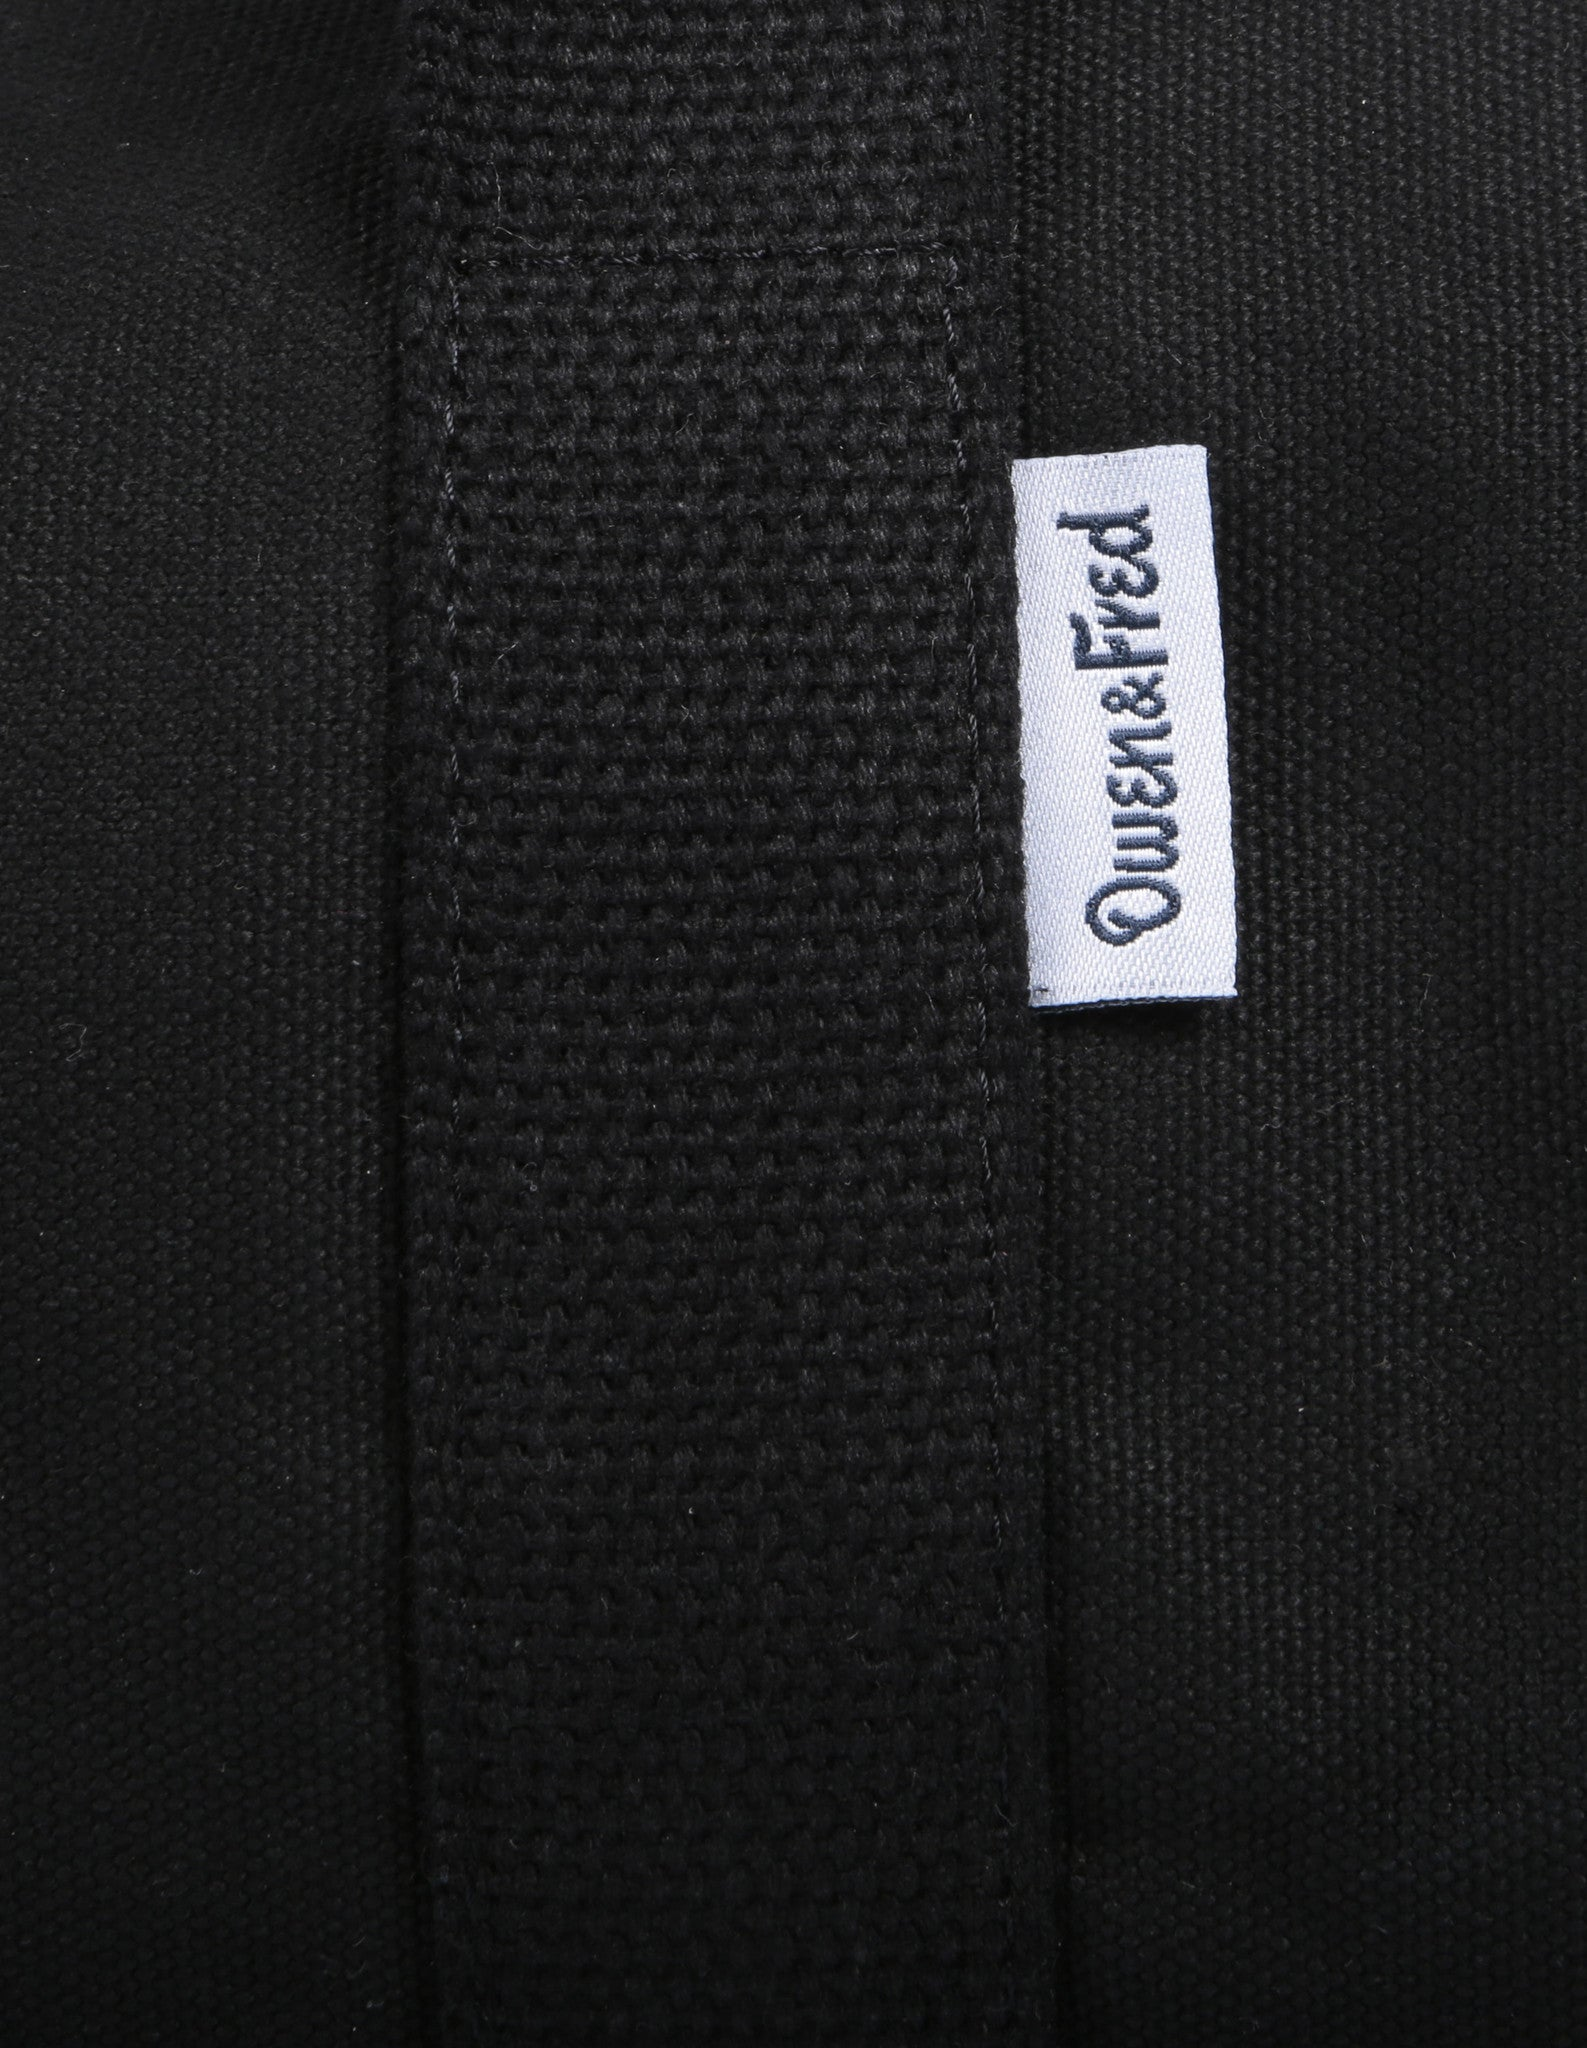 Detail of Black Work Hard, Play Hard canvas duffel bag by Owen & Fred